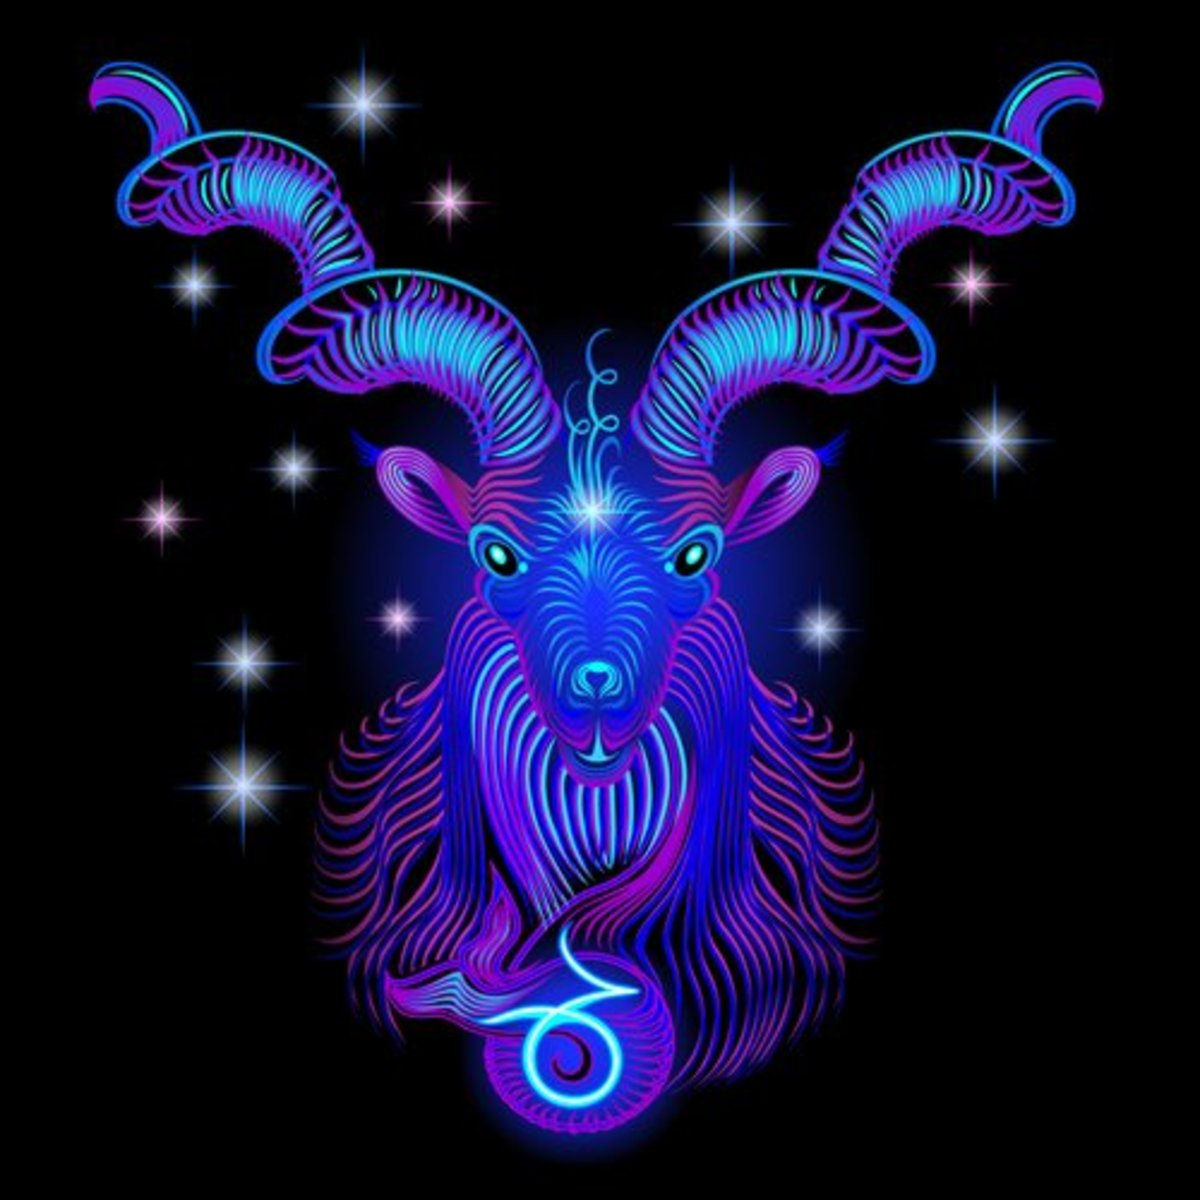 Capricorn is infused with authority, stability and financial expertise.